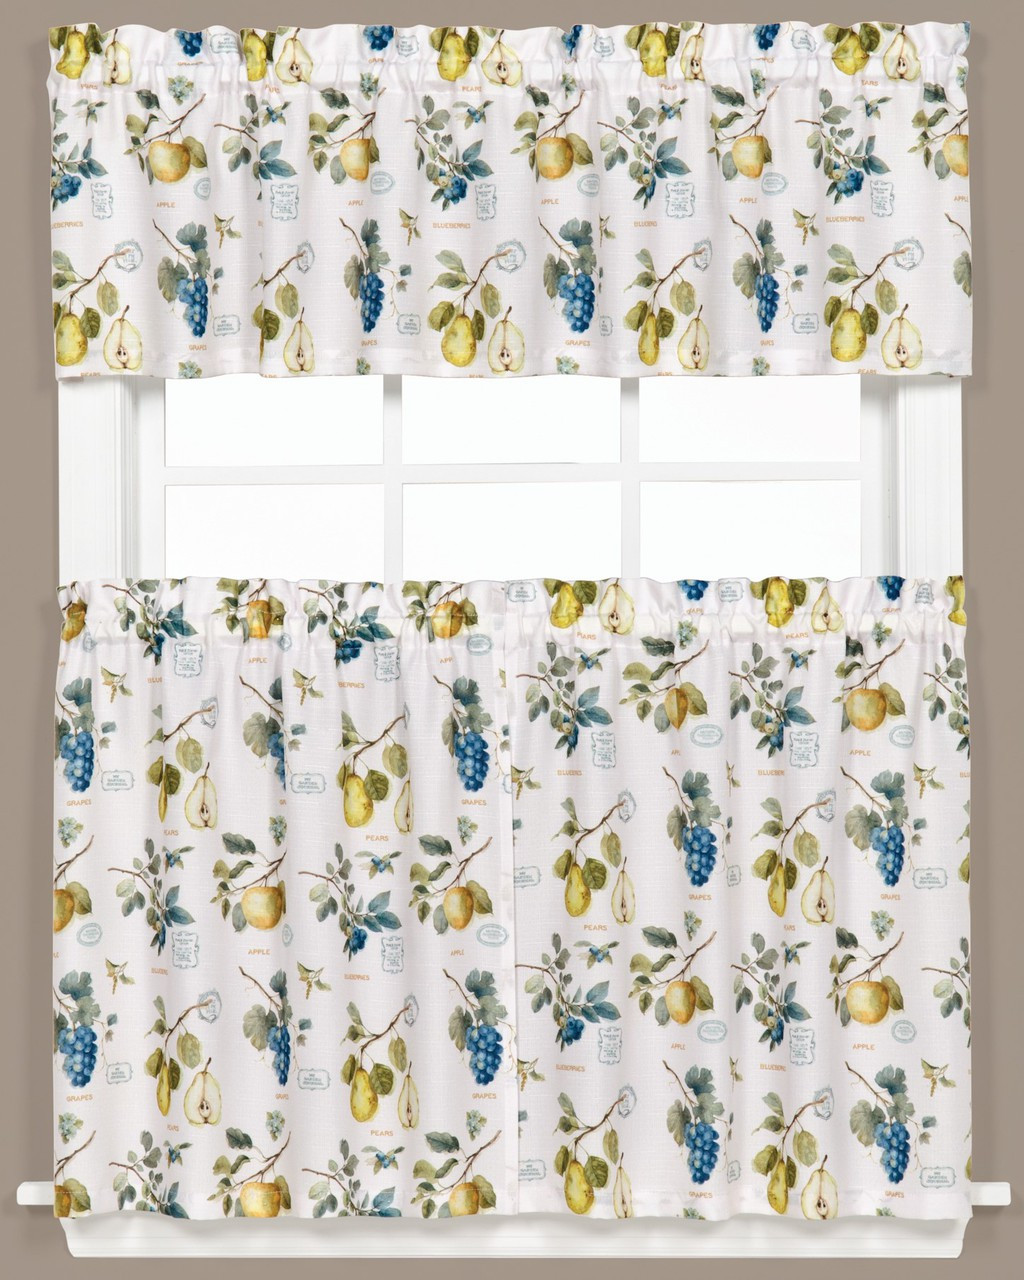 New Kitchen Curtains For Less: Botanical Fruit Kitchen Curtain